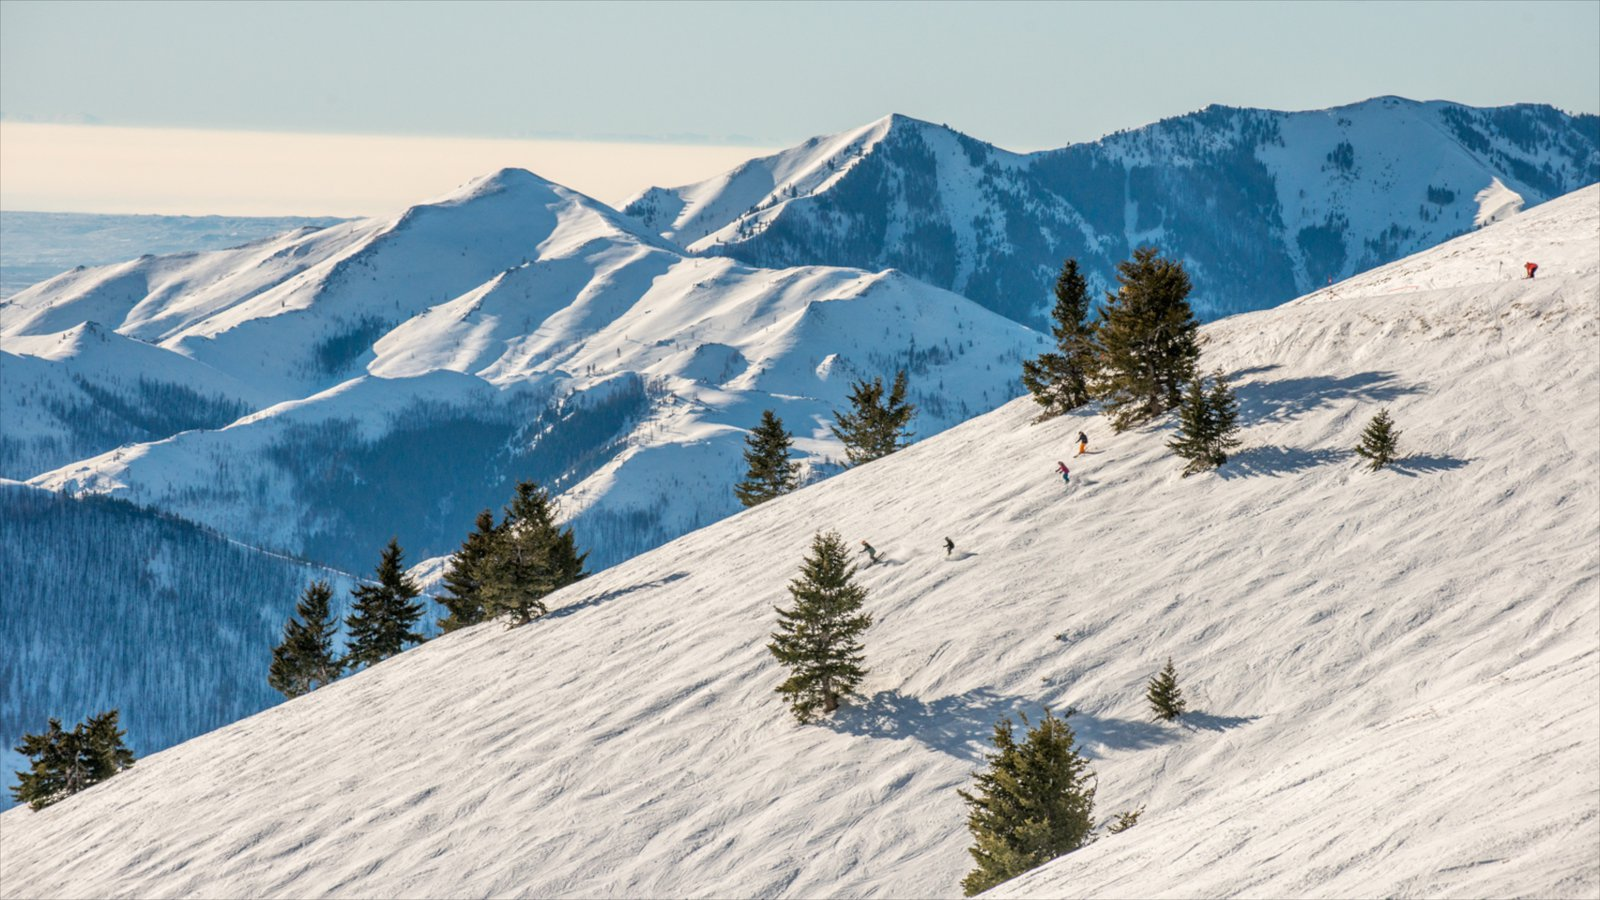 Sun Valley Ski Resort que inclui montanhas e neve